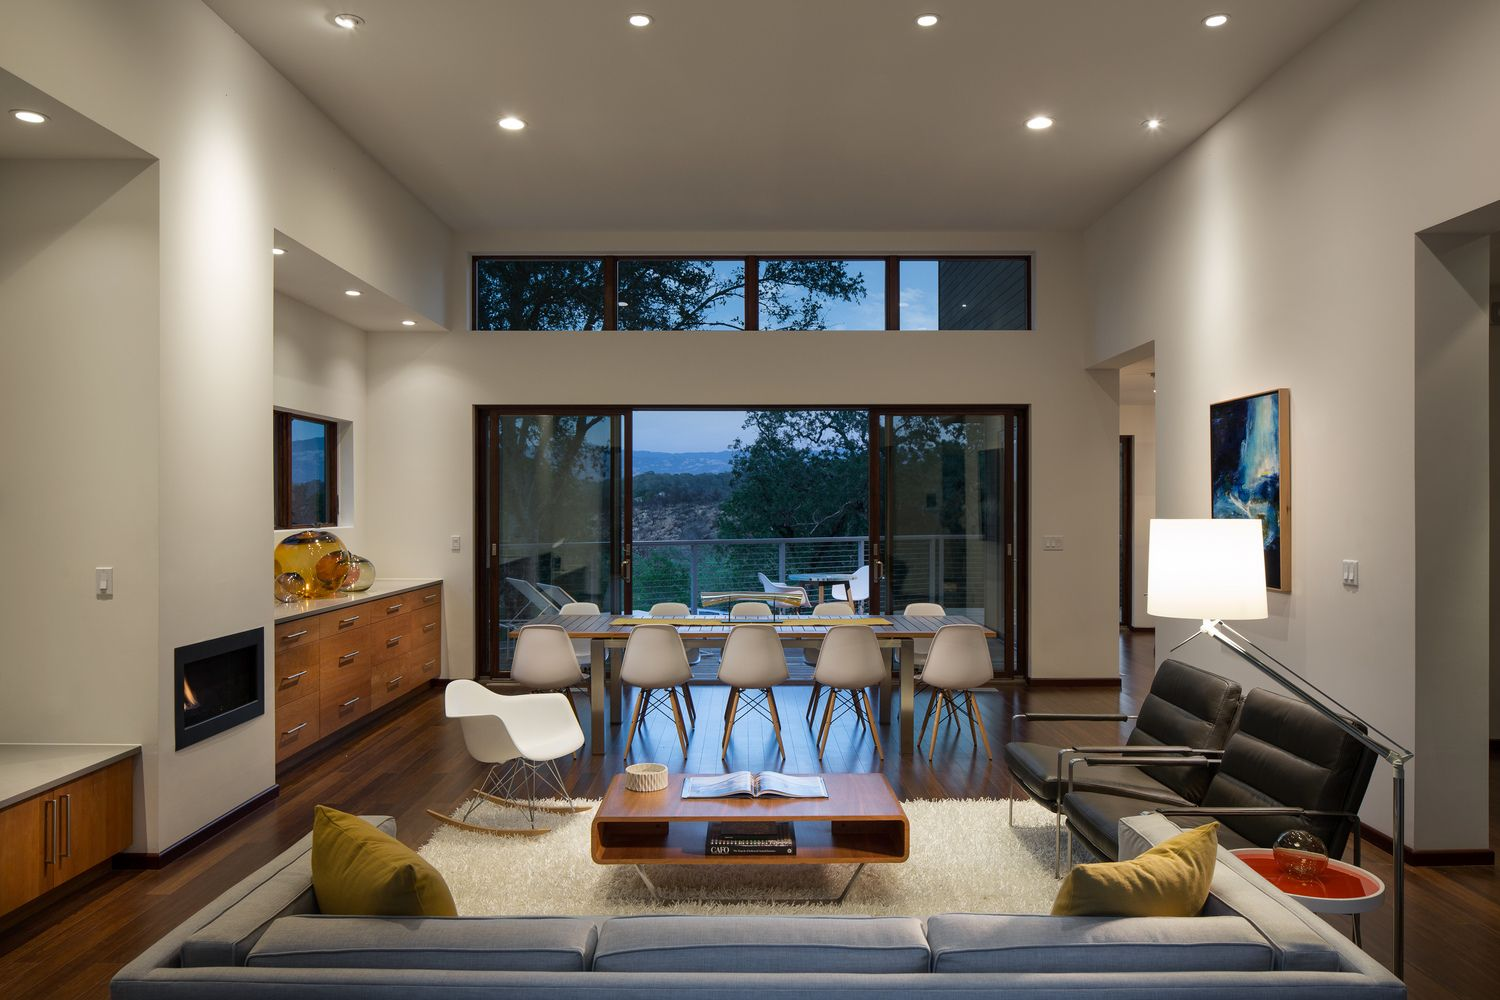 Pin By Carl On Ideas For The House Pinterest Inspiration And House # Muebles Jenny Montano